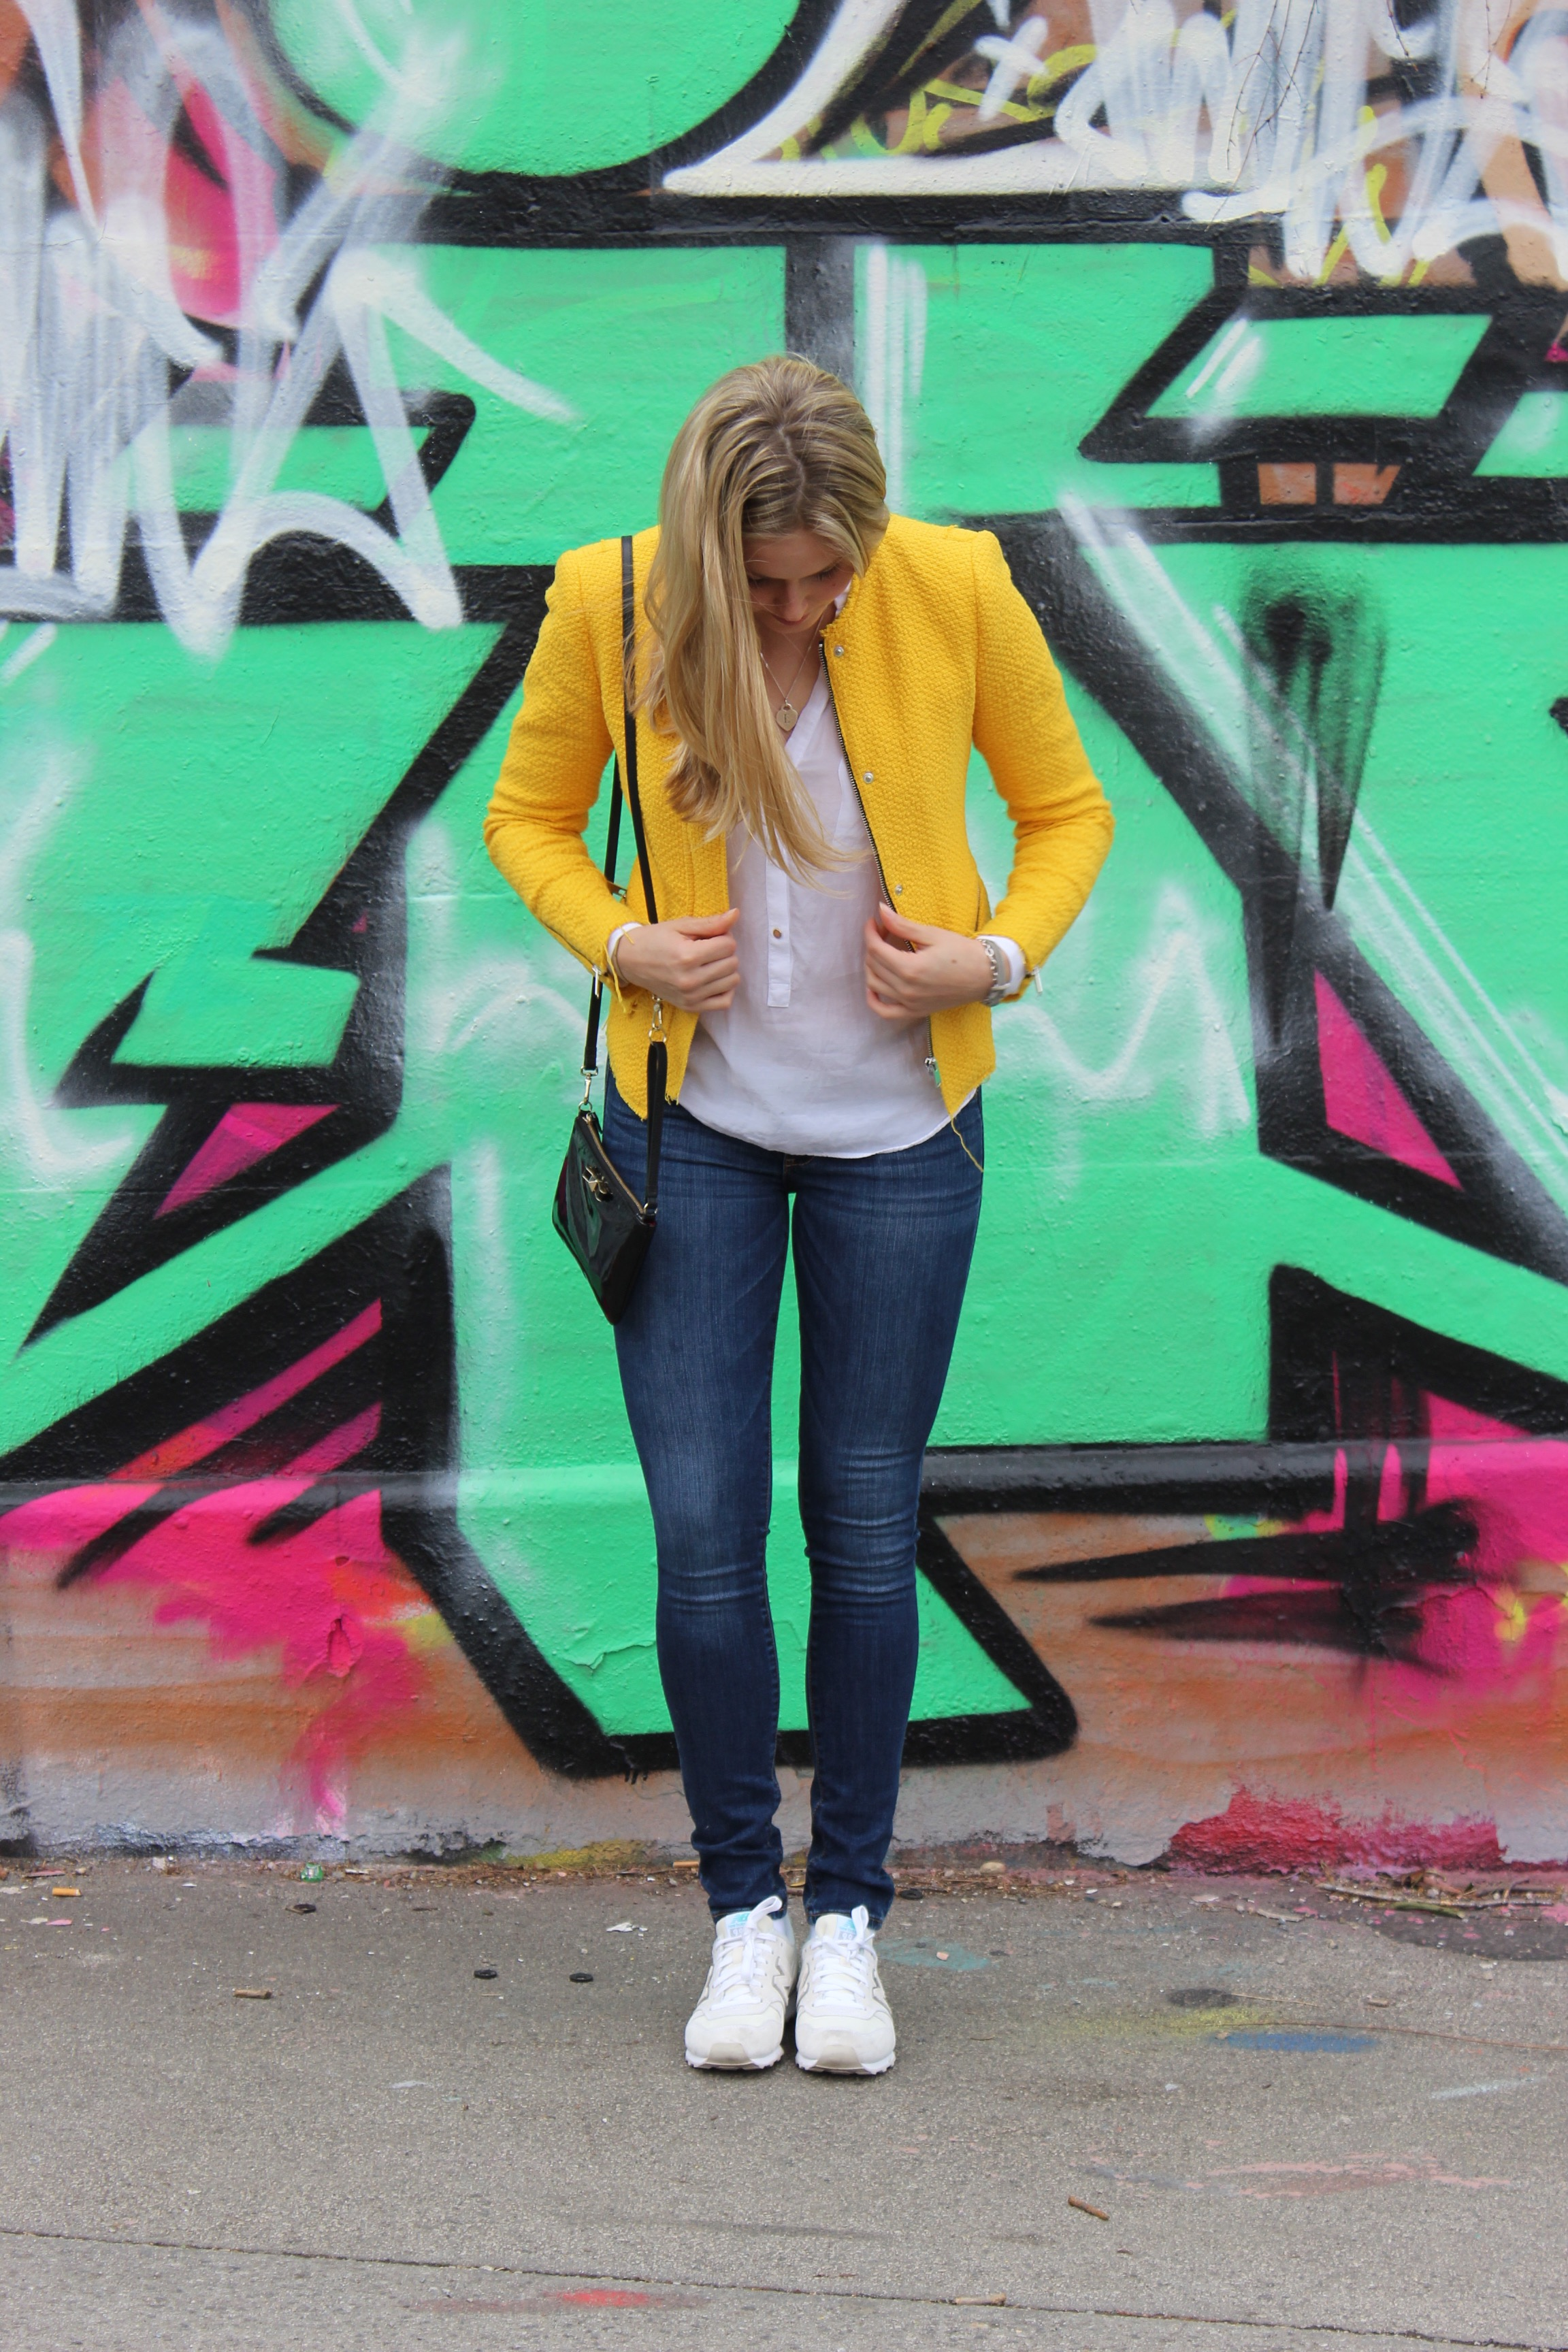 Bits and Bobs by Eva, Blog, Austrian Blog, Österreichische Blog, lovedailydose, your daily treat, fashion, beauty, food, interior, fitness, new, bitsandbobsbyeva.com, travel, outfit, ootd, spring color yellow, gelber Blazer